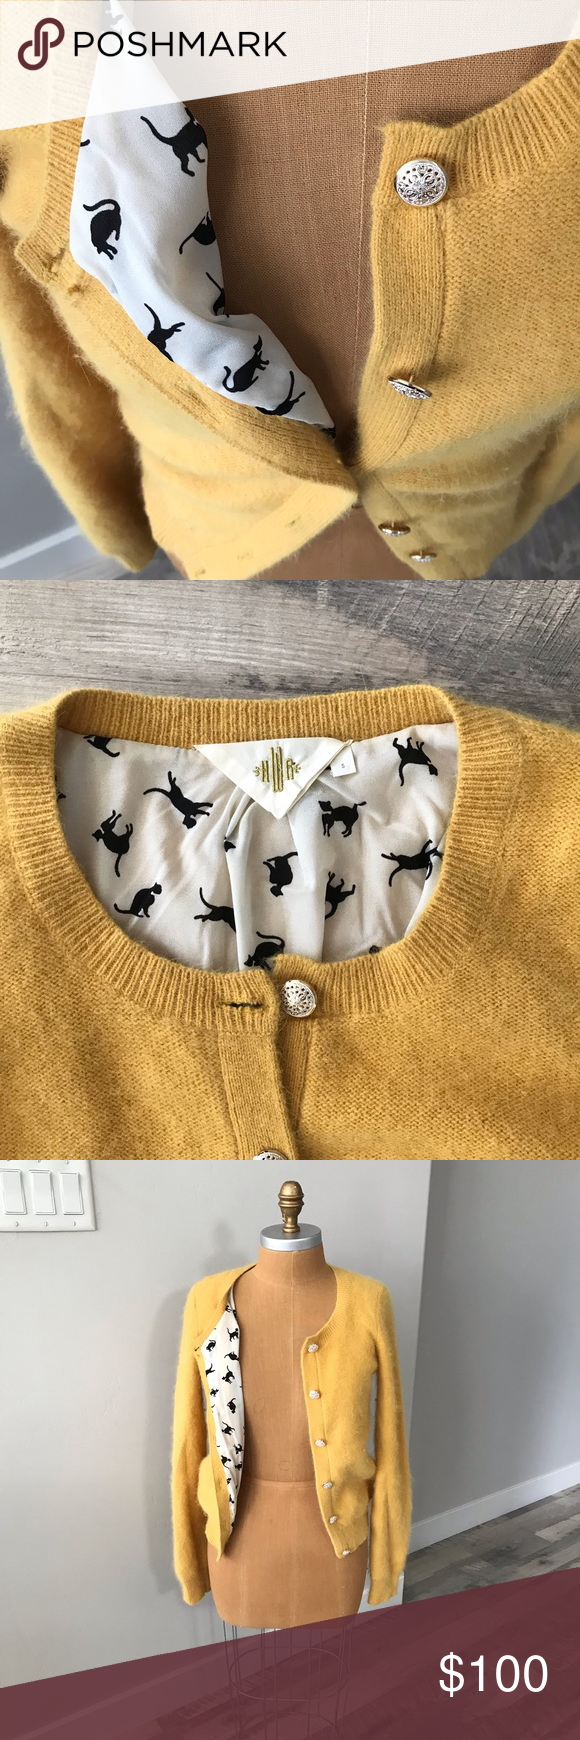 Rare HWR cardigan with cat print lining In excellent